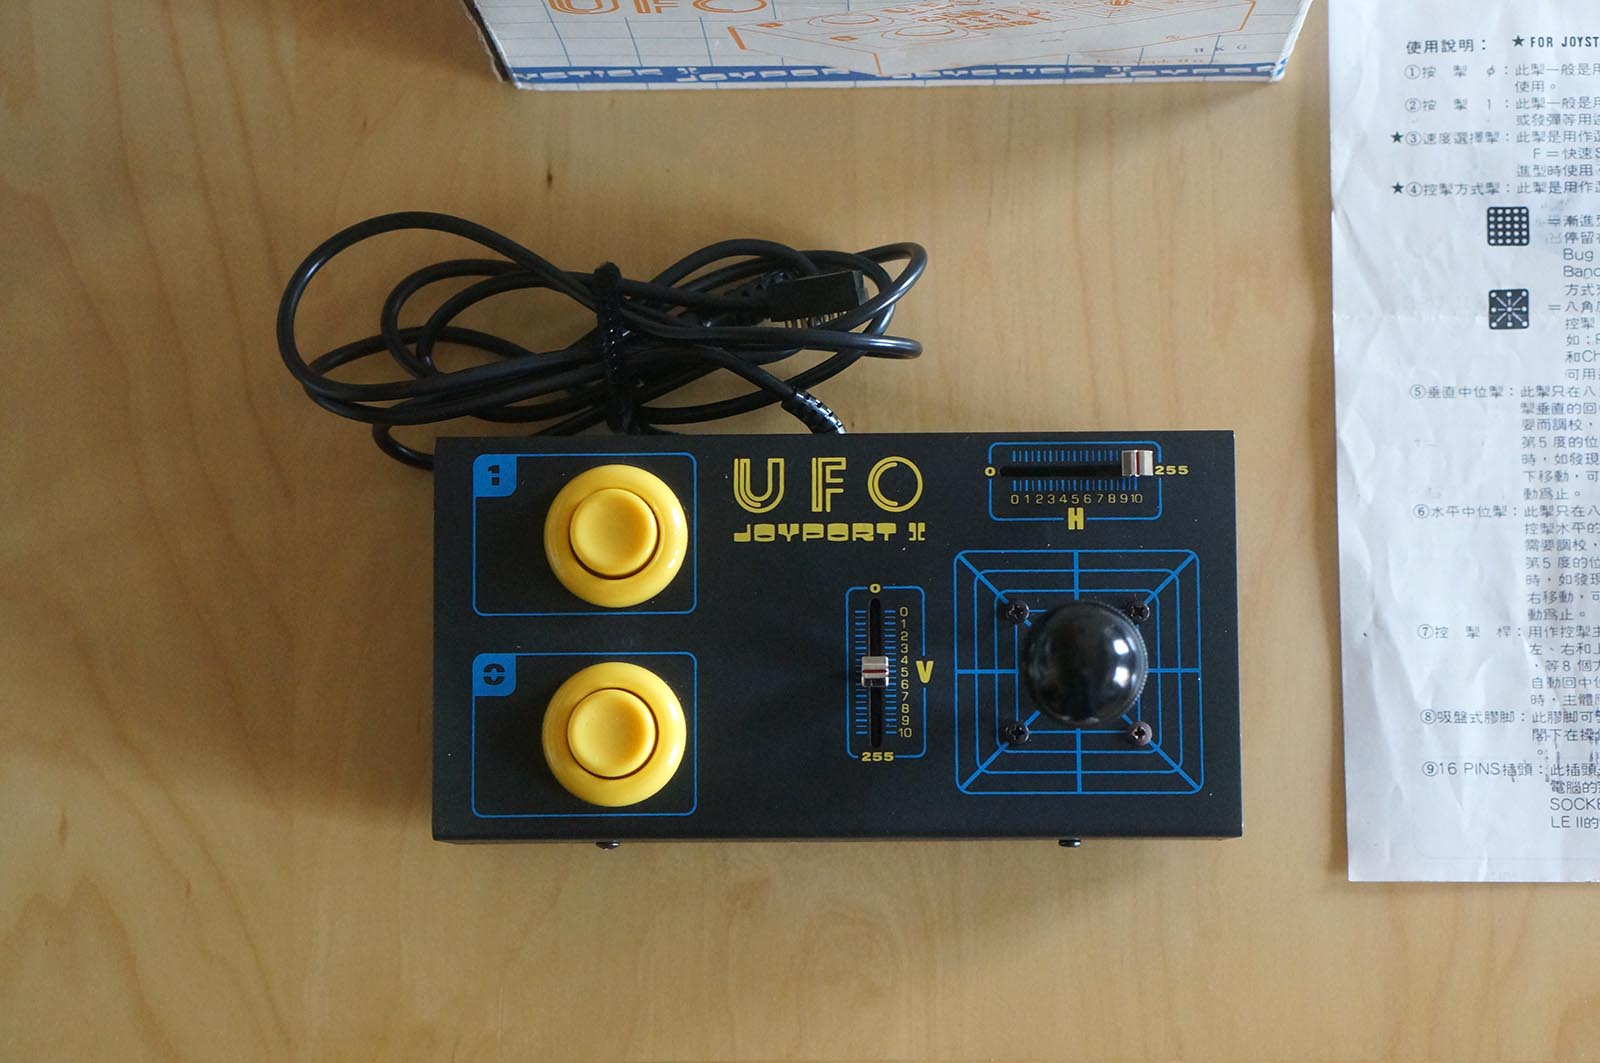 Apple II - UFO Joyport II Japan